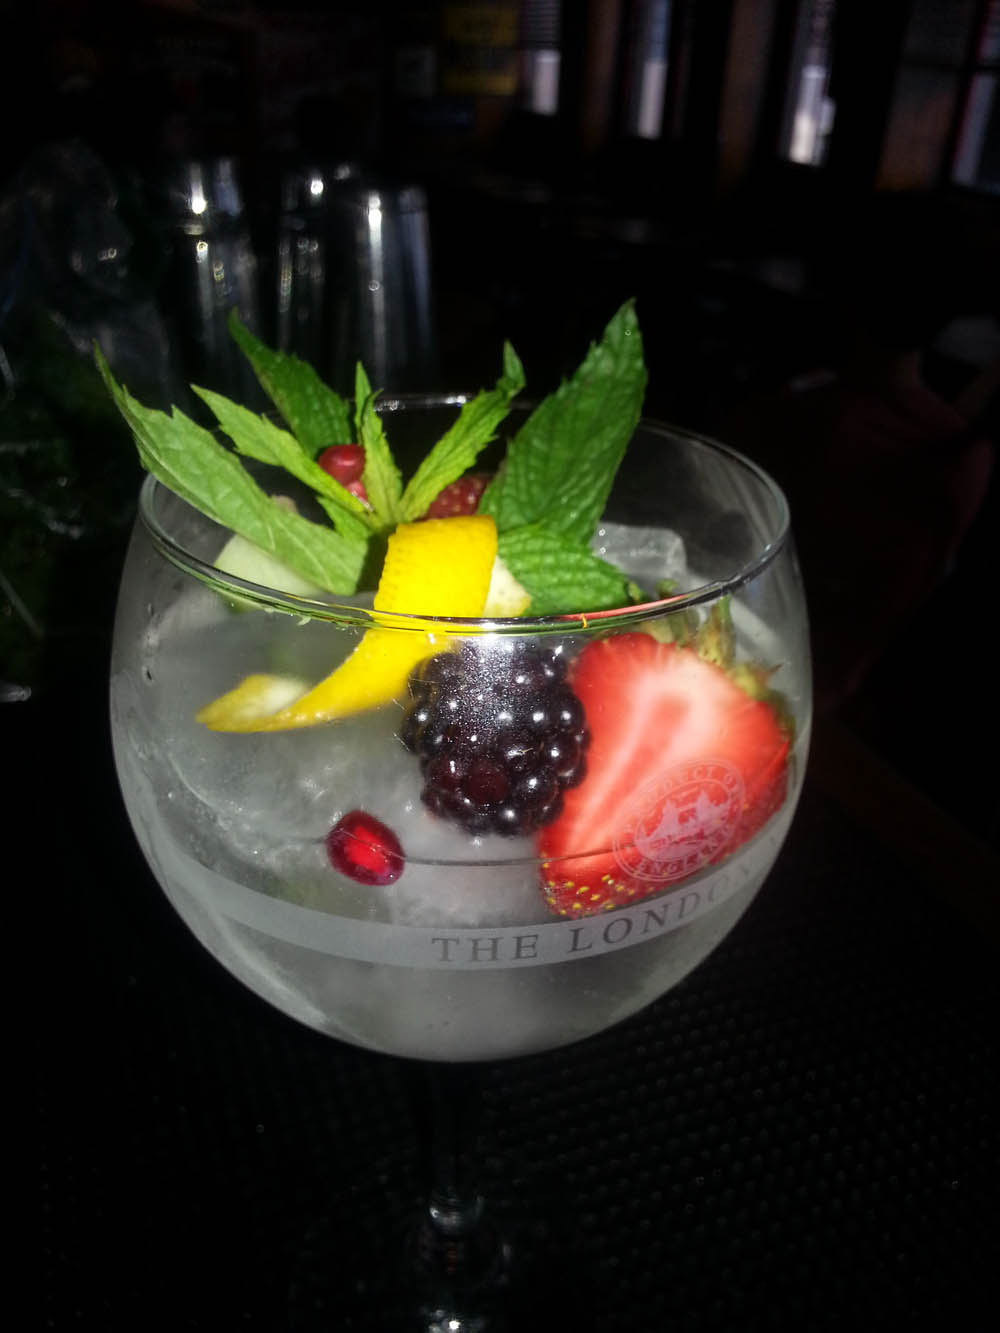 The London Gin Club's Summer cup